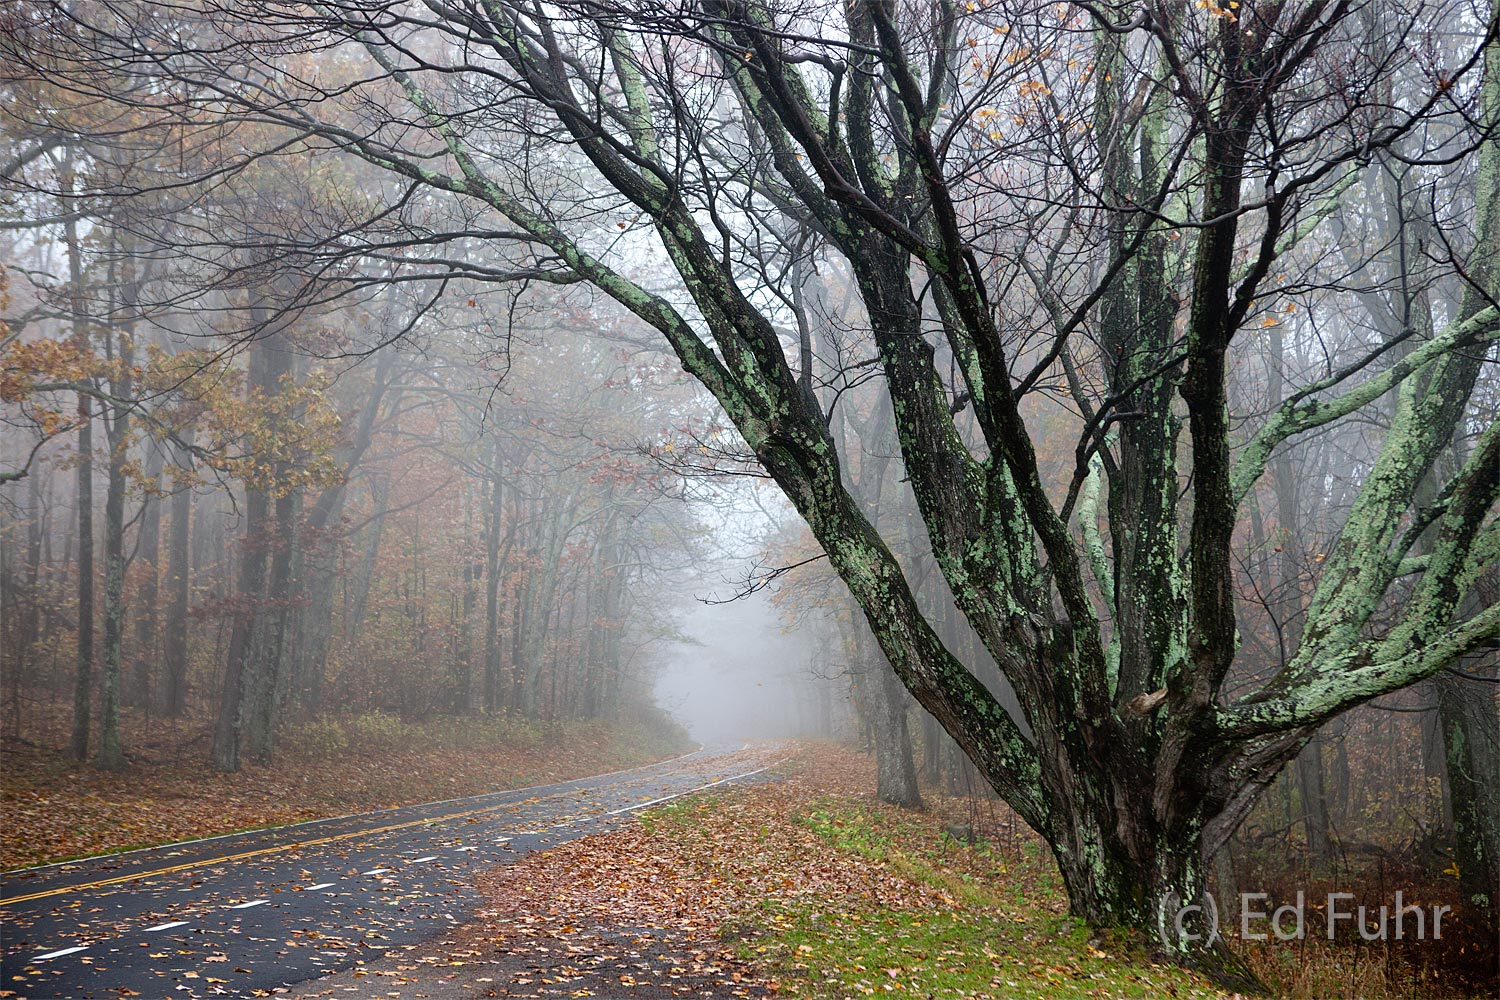 Shenandoah, Shenandoah National Park, photo, photography, images, mountains, wilderness, Virginia, Skyline Drive, road, fall, autumn, foliage, color, photo